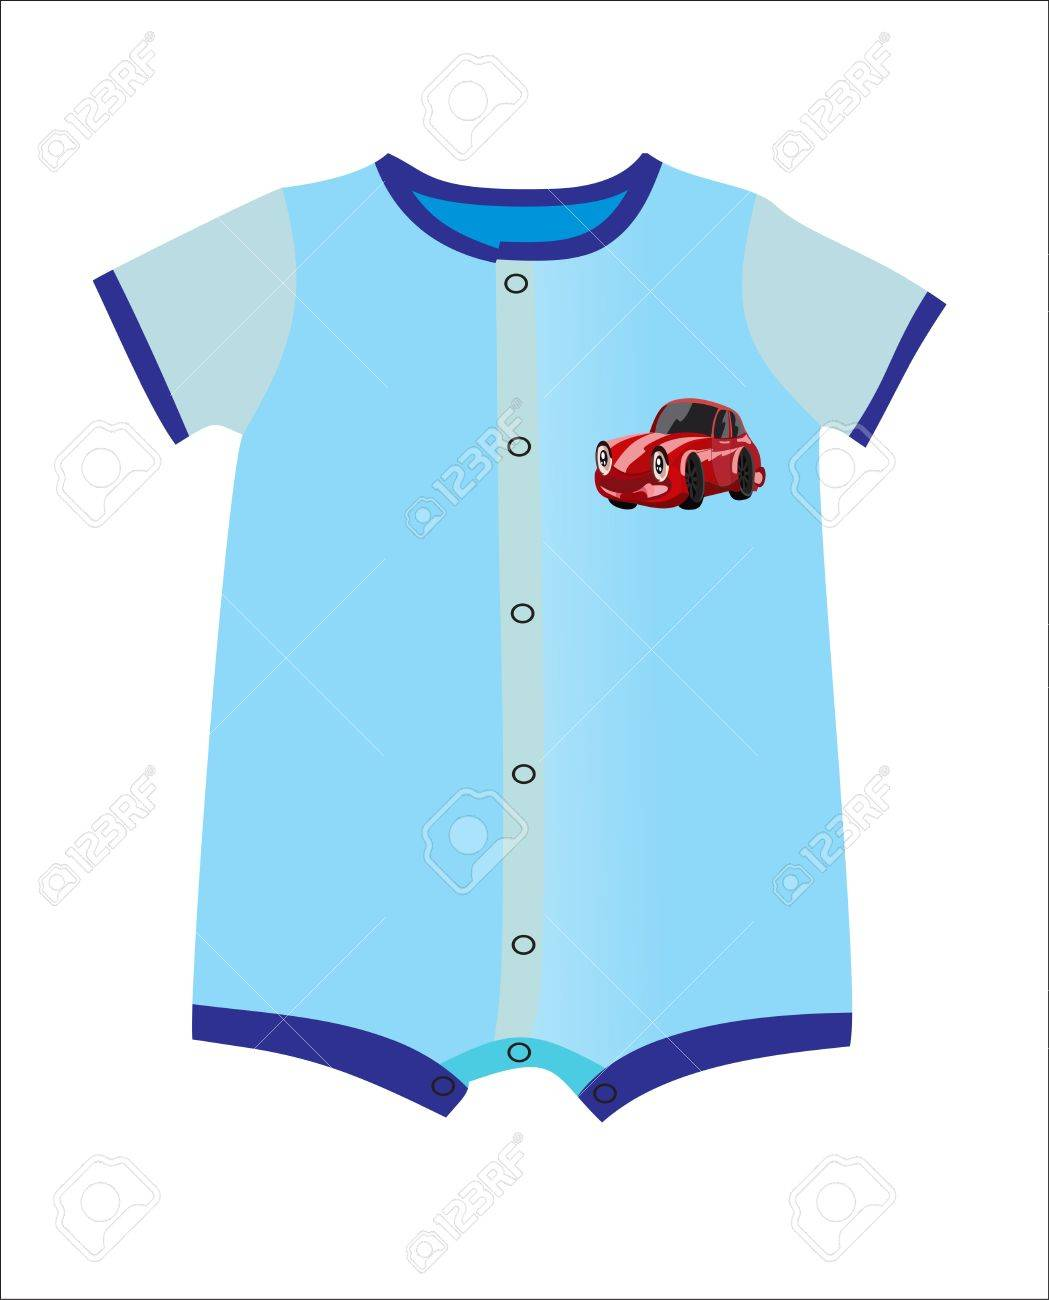 71373 Baby free clipart.